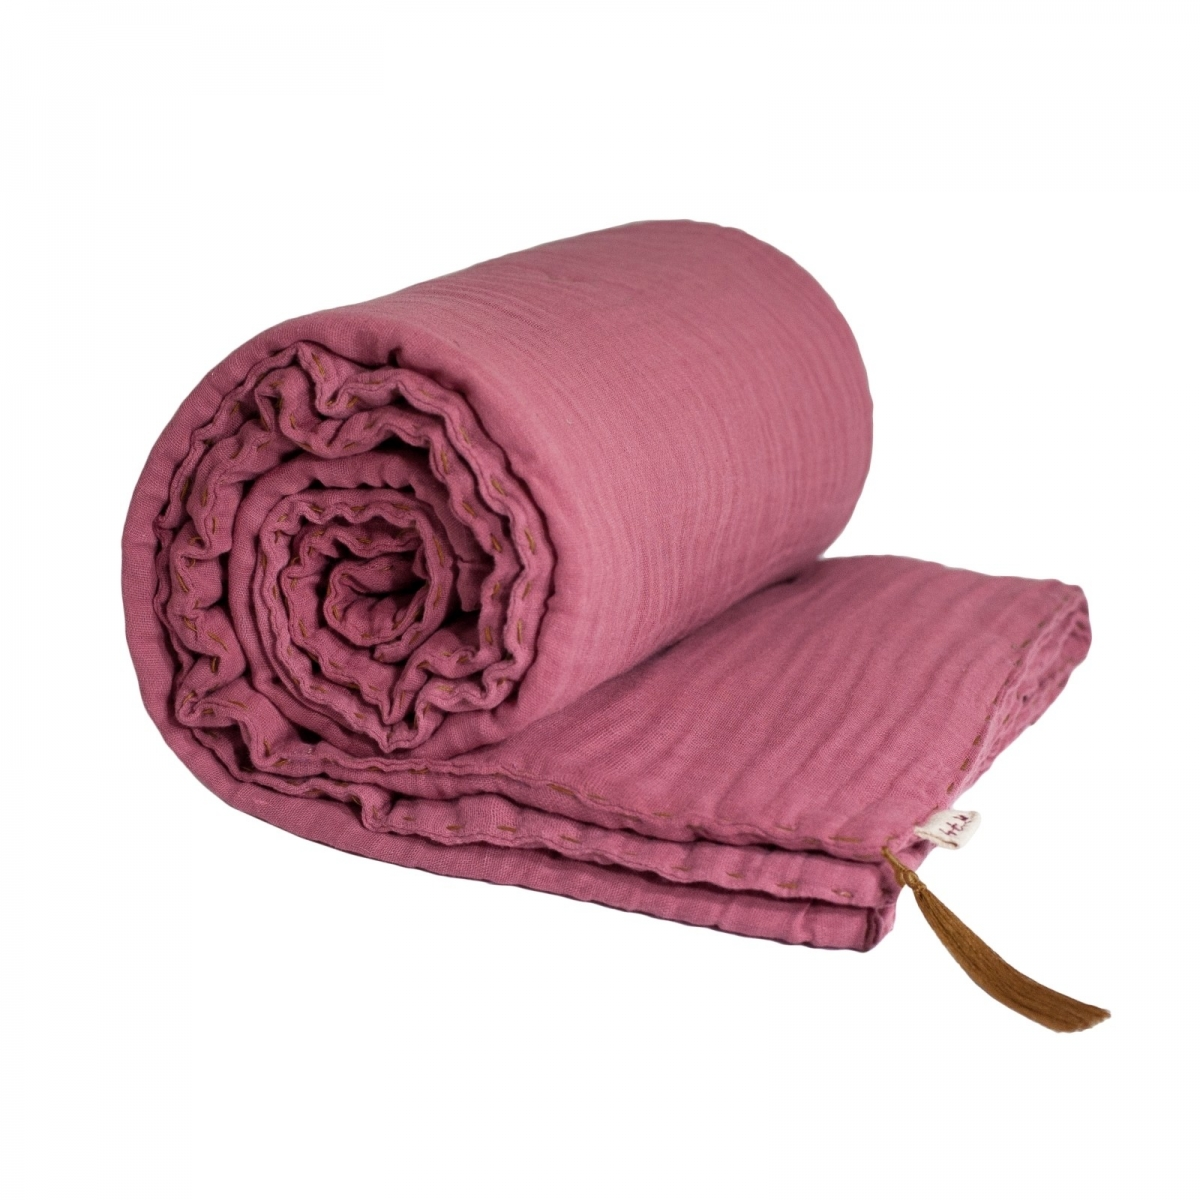 Winter Blanket baobab rose - Numero 74